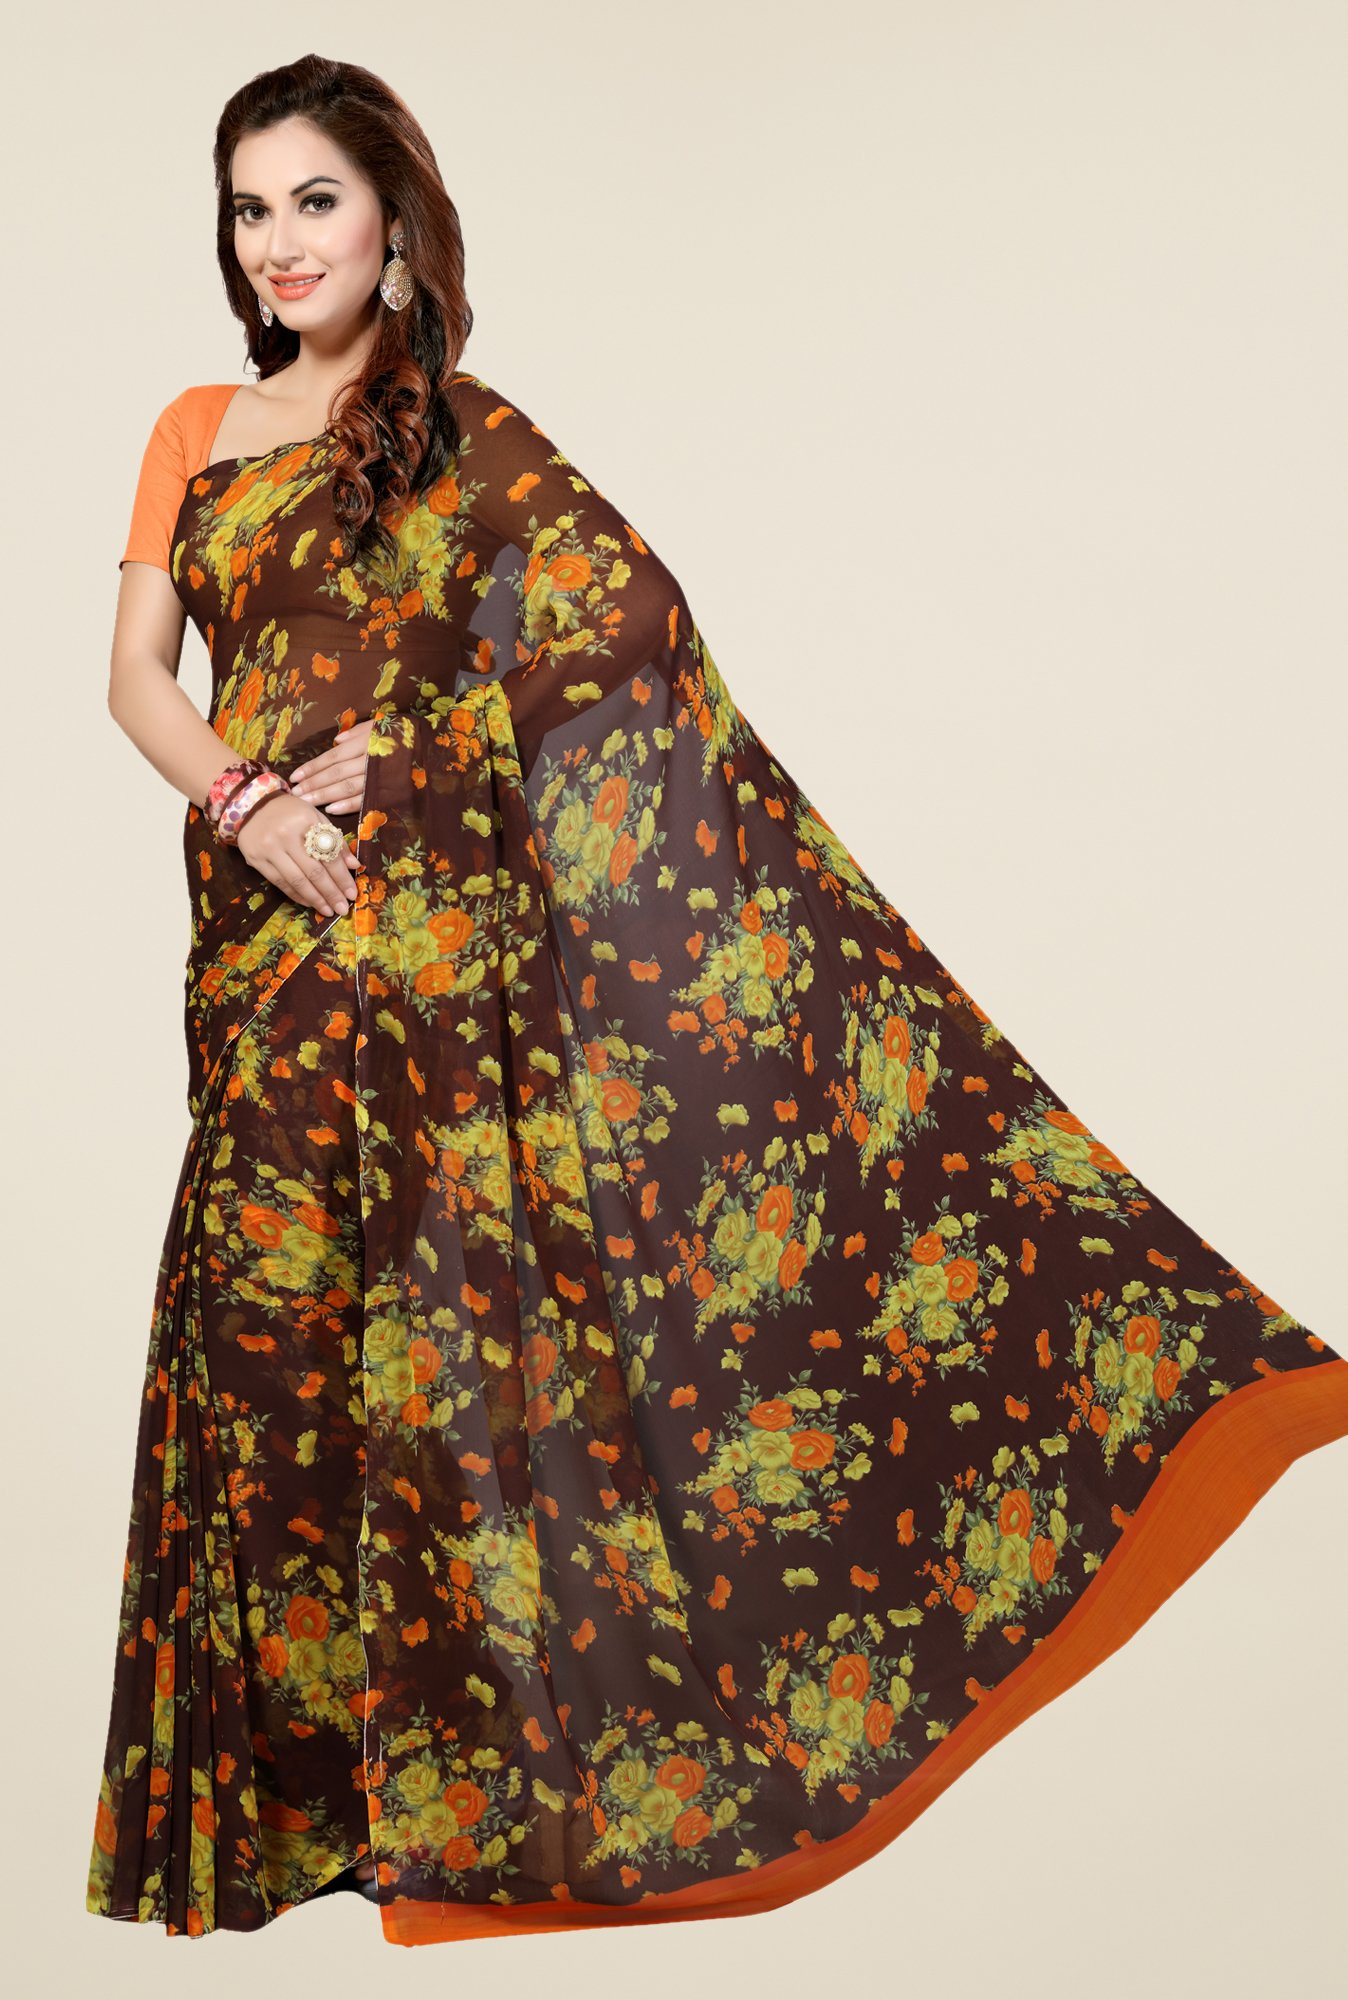 Ishin Brown Faux Georgette Floral Print Saree